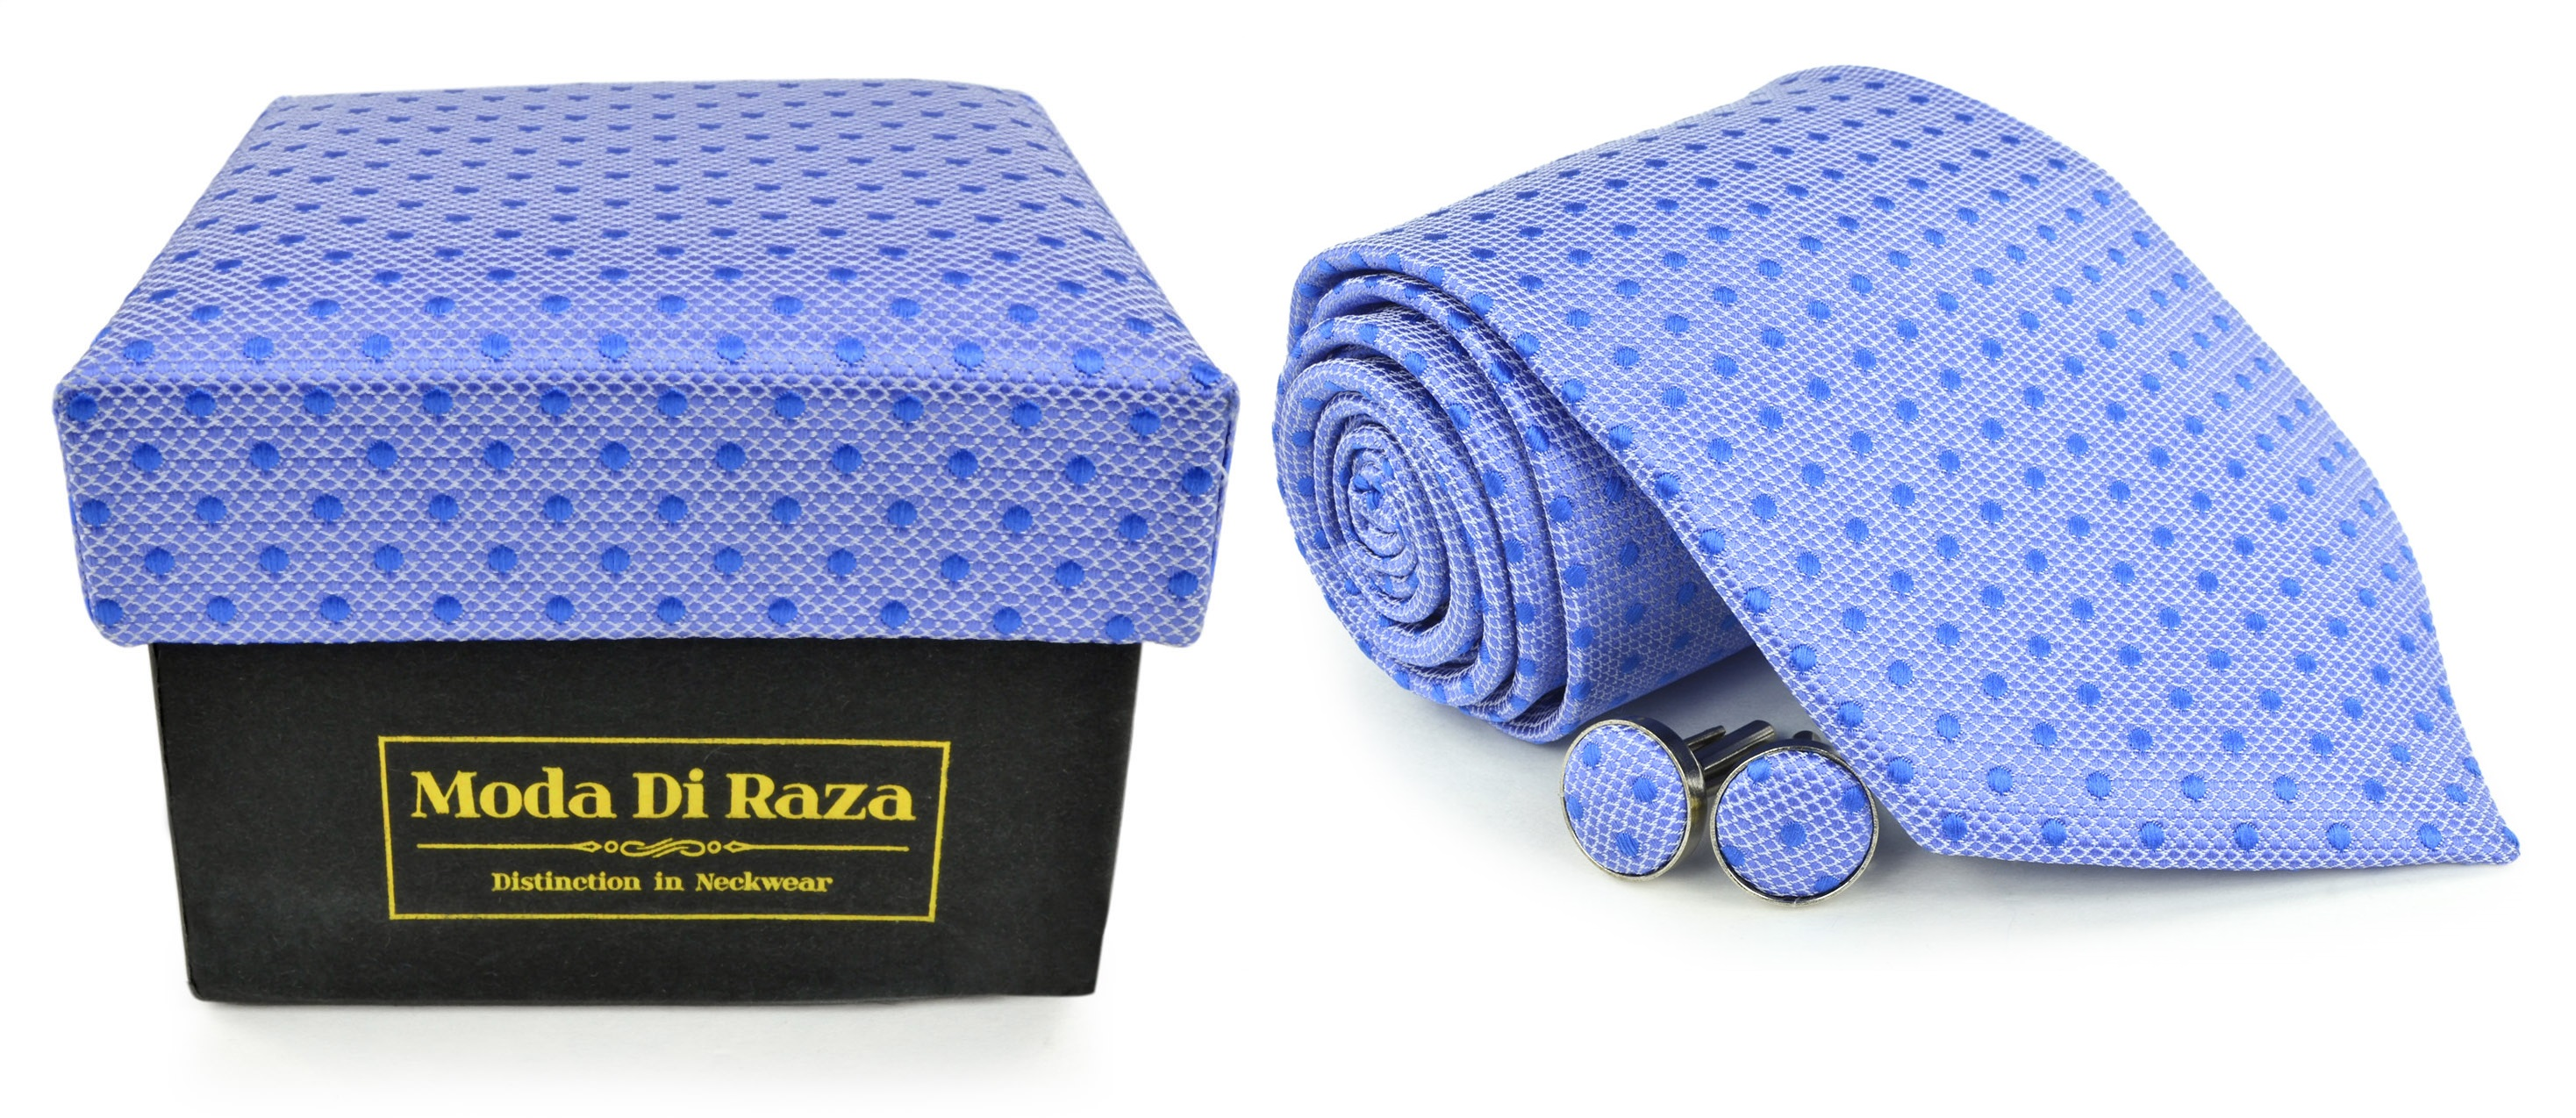 Moda Di Raza Men's NeckTie 3.0 With Cufflink n Gift Box Wedding Formal Events - LightBlue